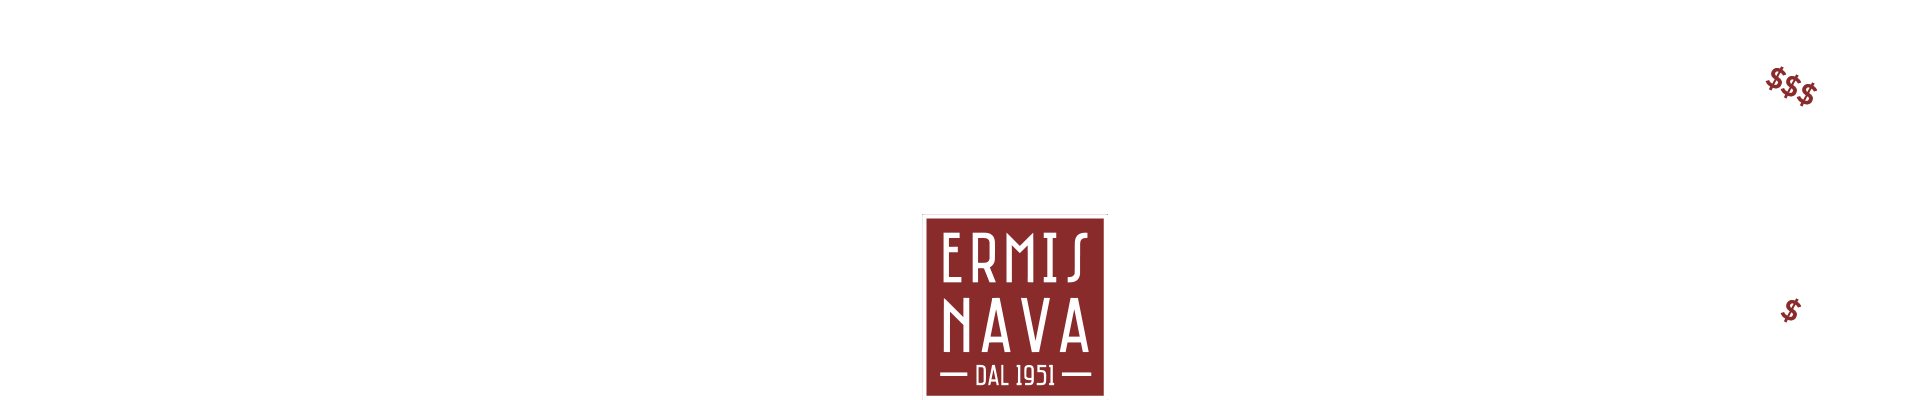 About Us - Production chain - Ermis Nava